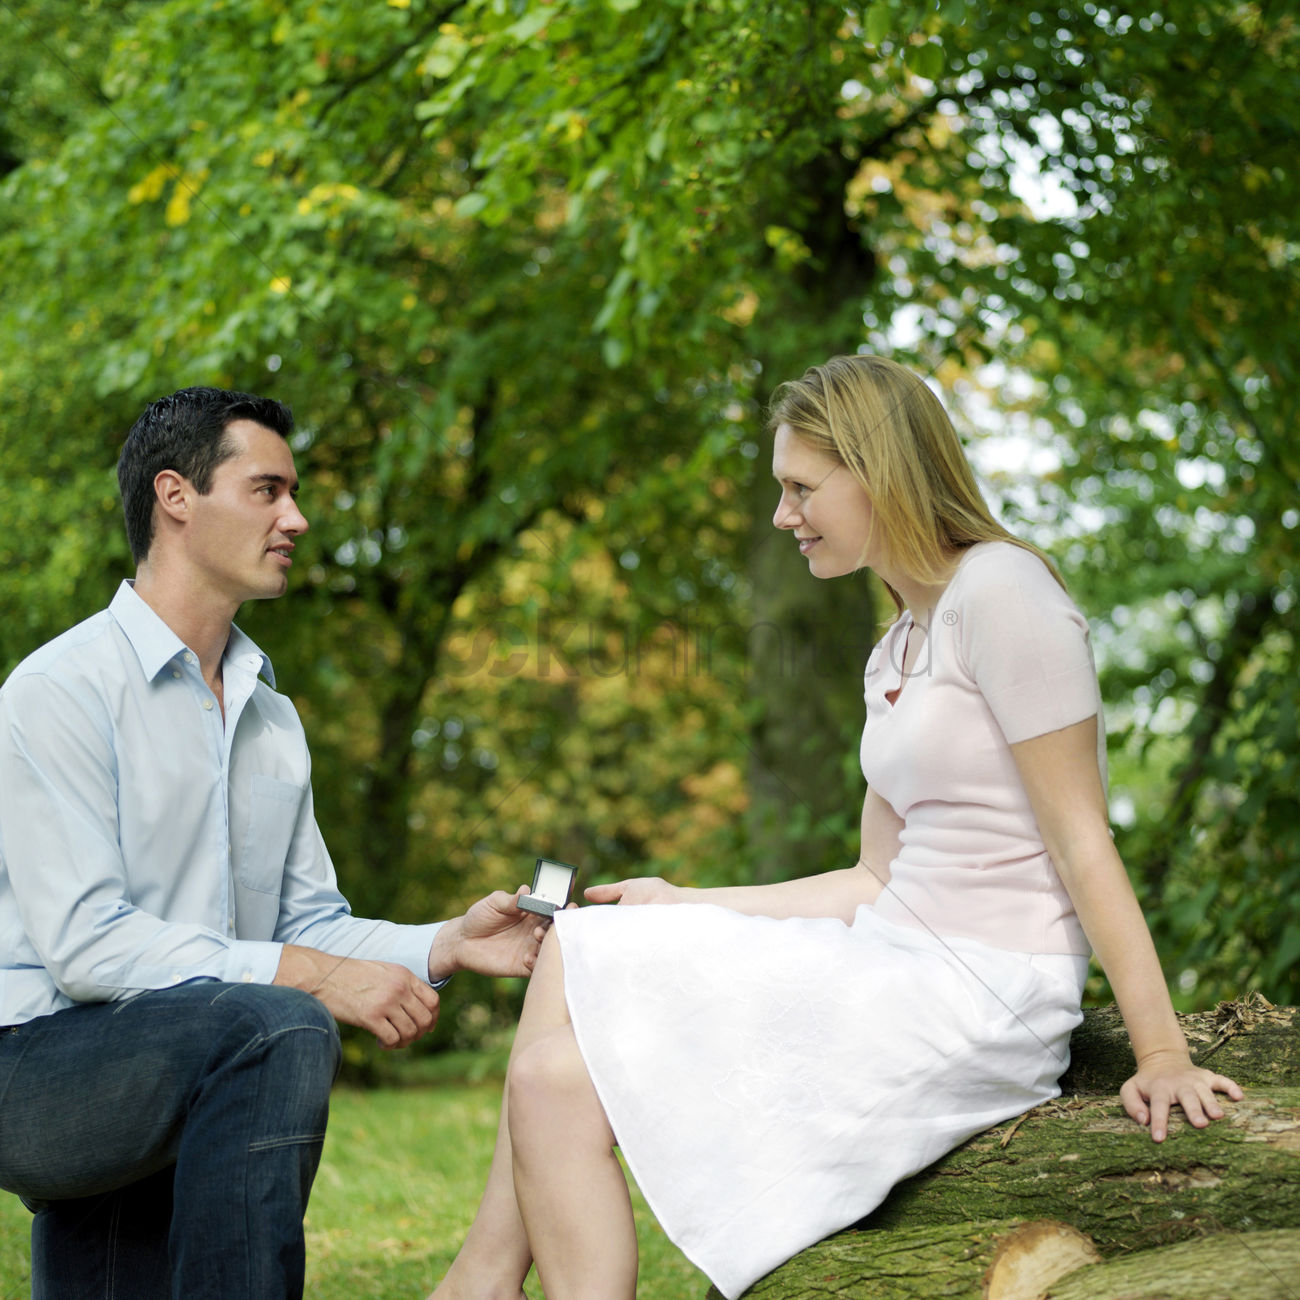 Man Proposing To His Girlfriend Stock Photo